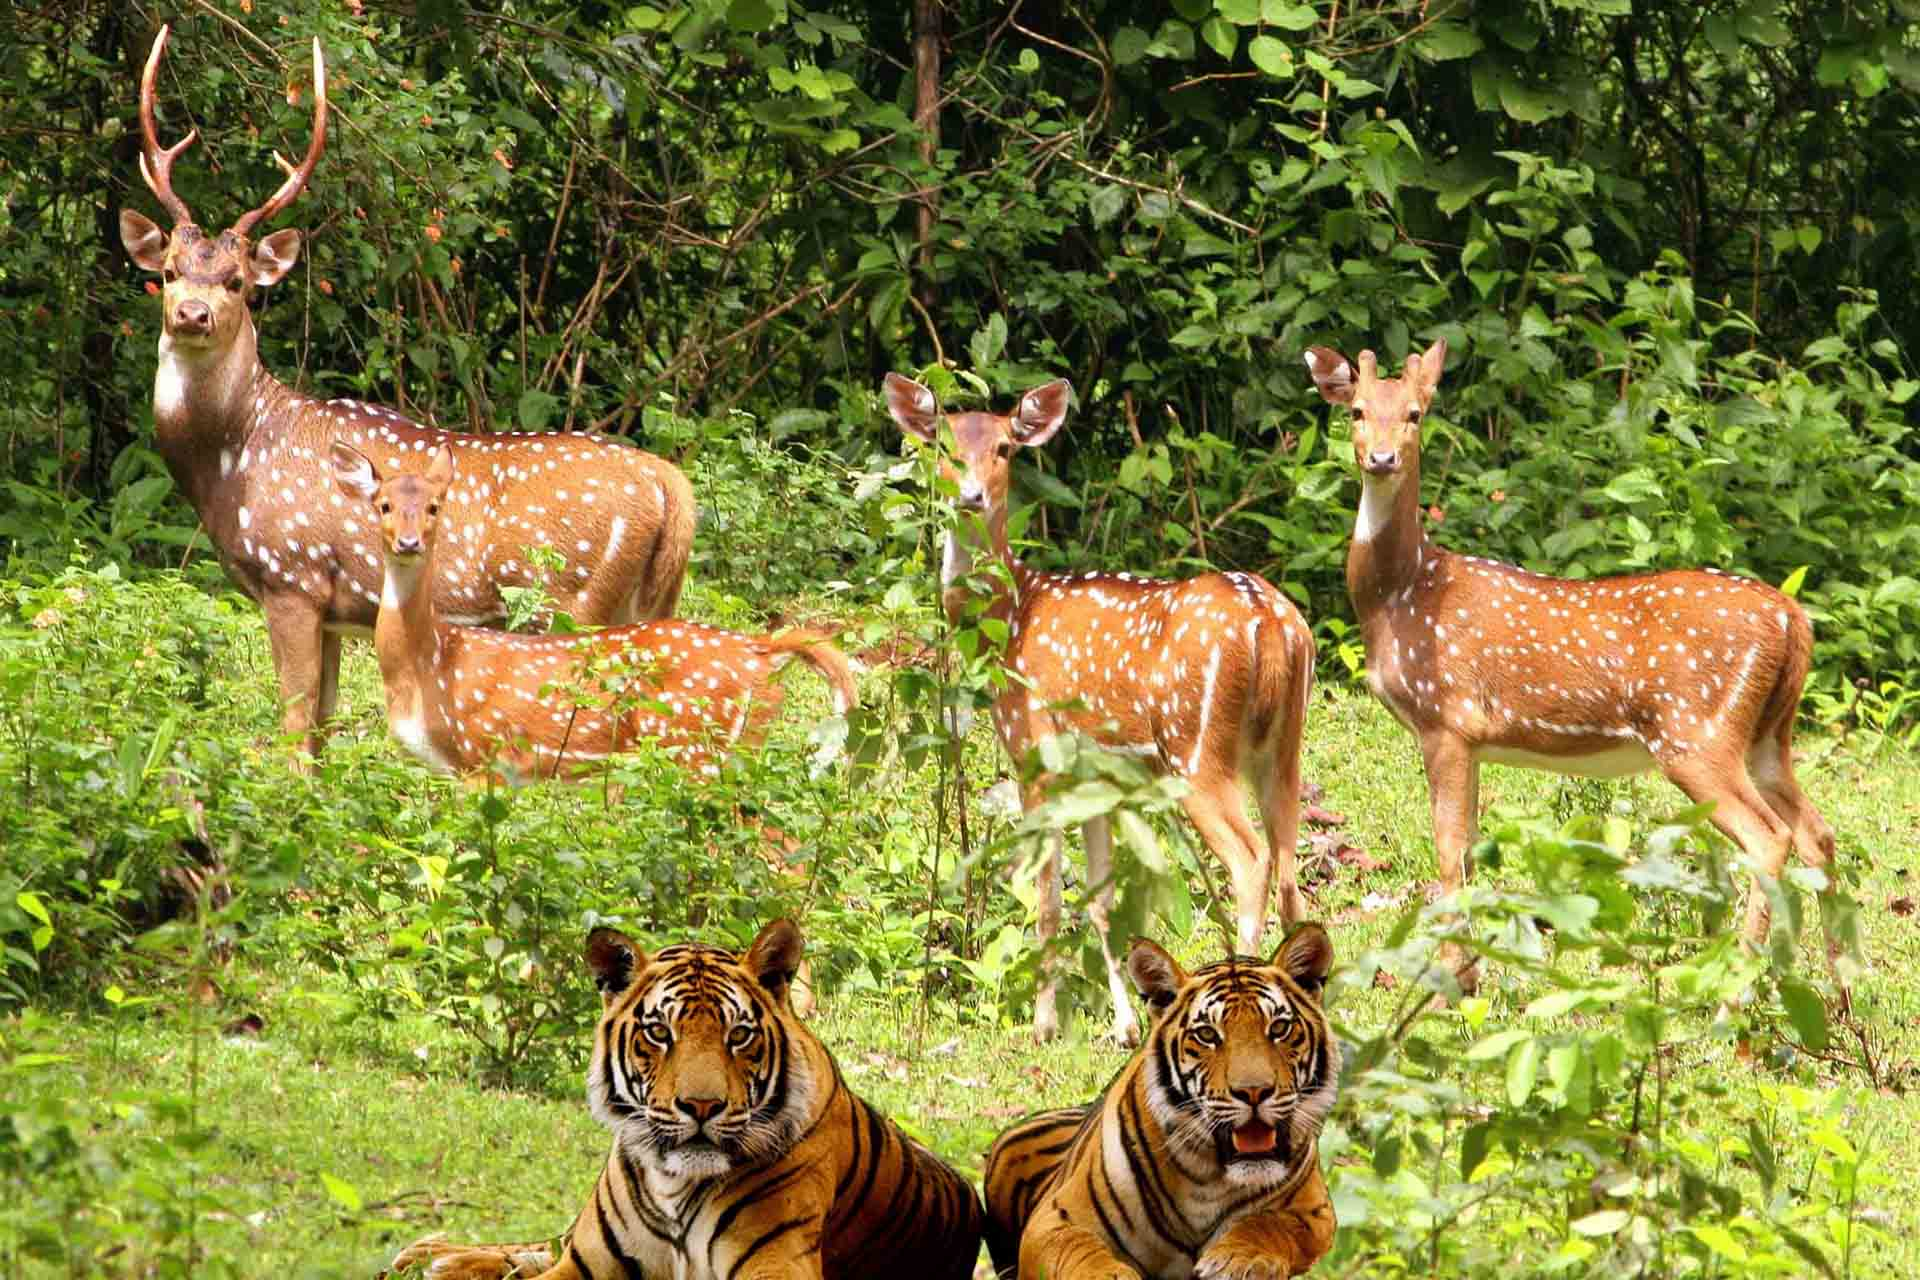 jim corbett national park Jim corbett national park in uttarakhand is the first tiger reserve of india get detailed info on this wildlife safari tours, best time to visit, & how to reach.